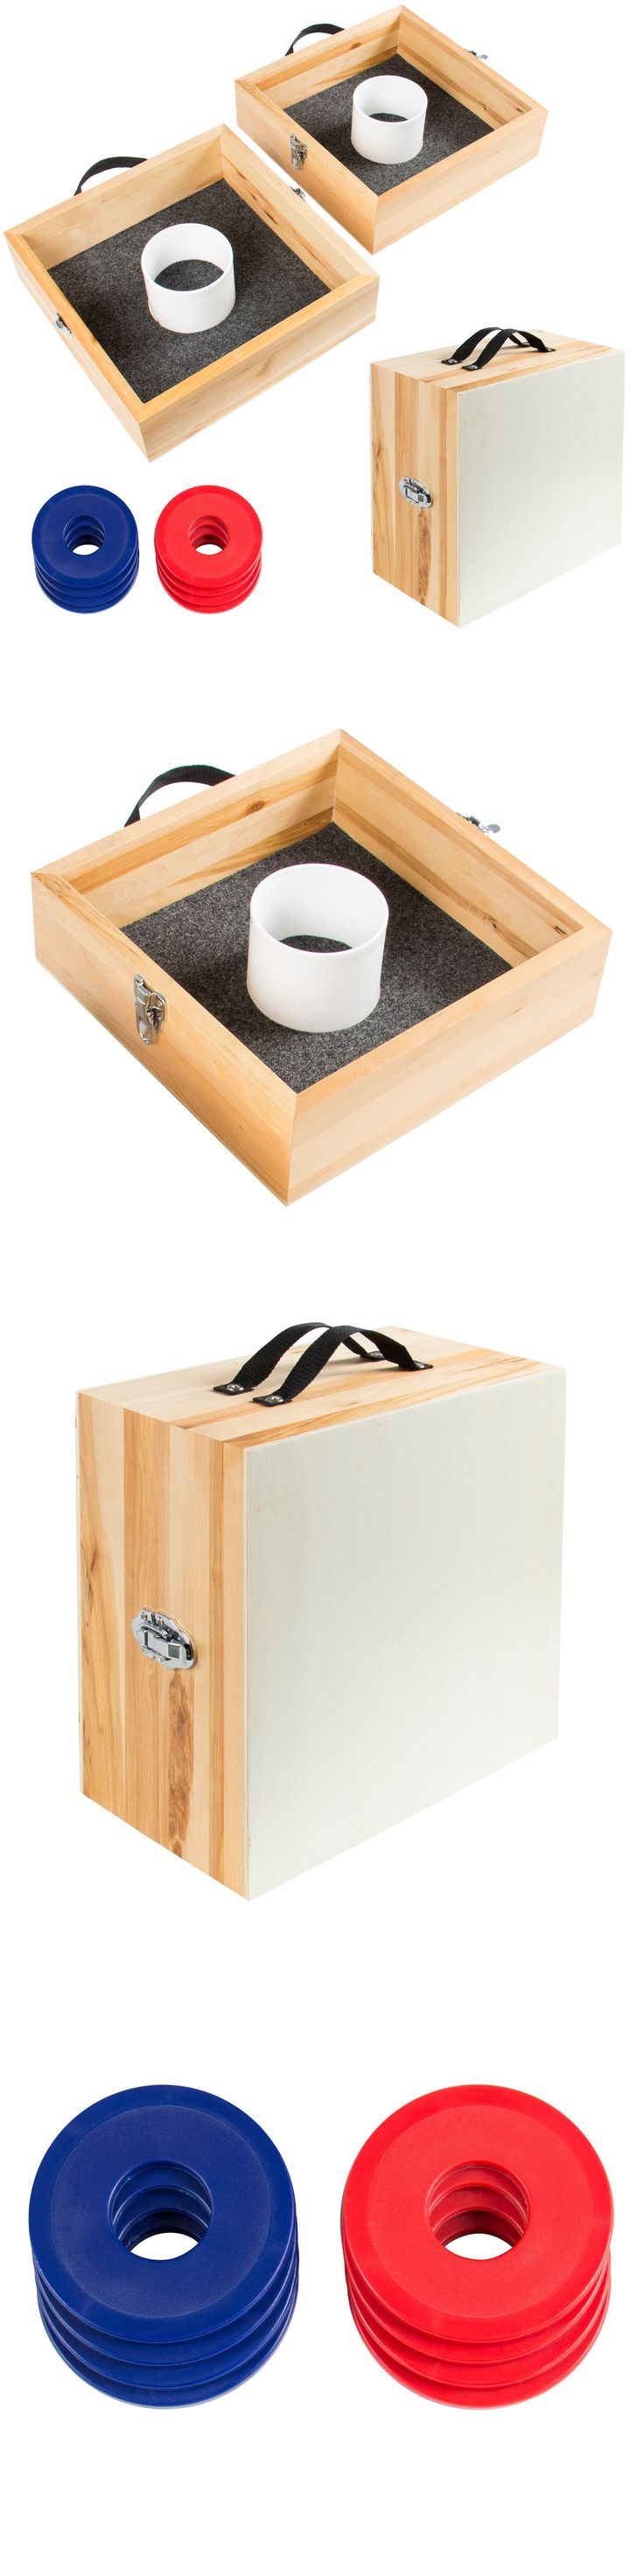 best ideas about washer toss game on pinterest washer toss washer